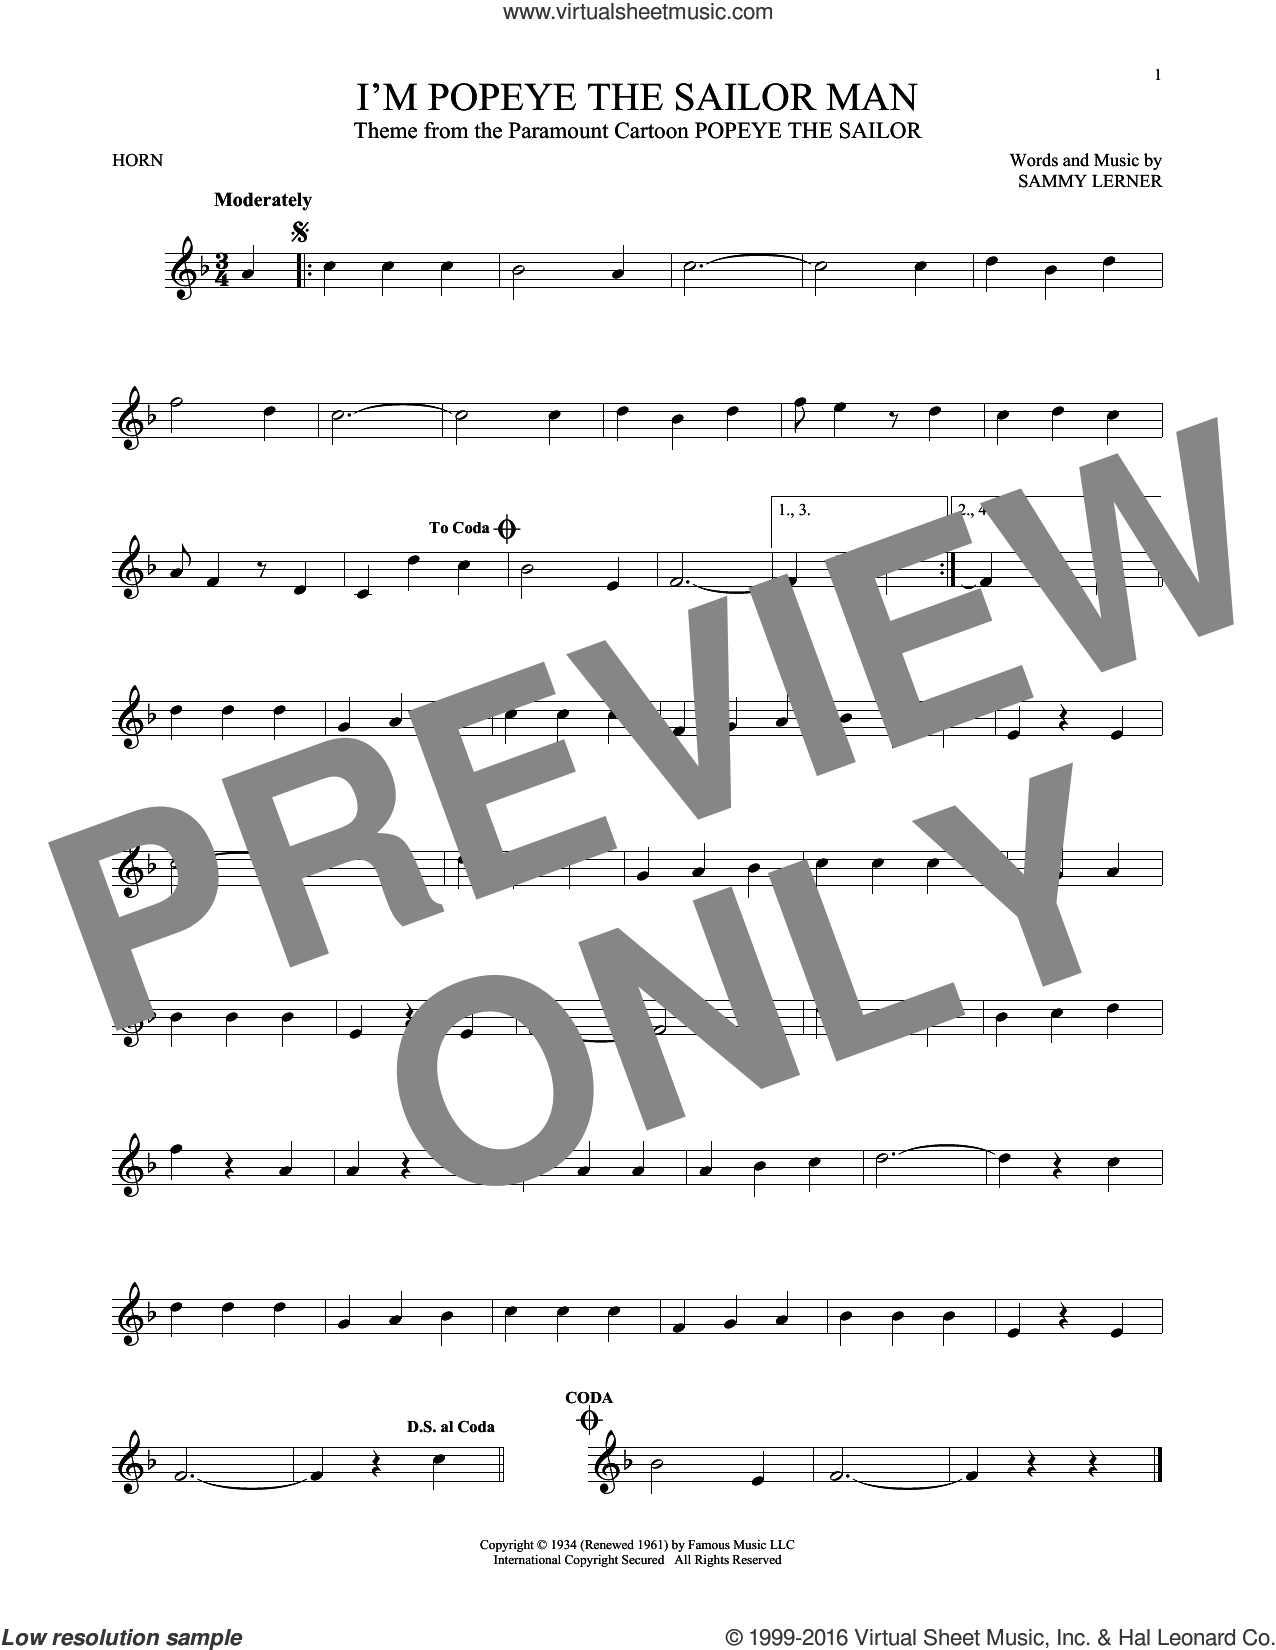 I'm Popeye The Sailor Man sheet music for horn solo by Sammy Lerner